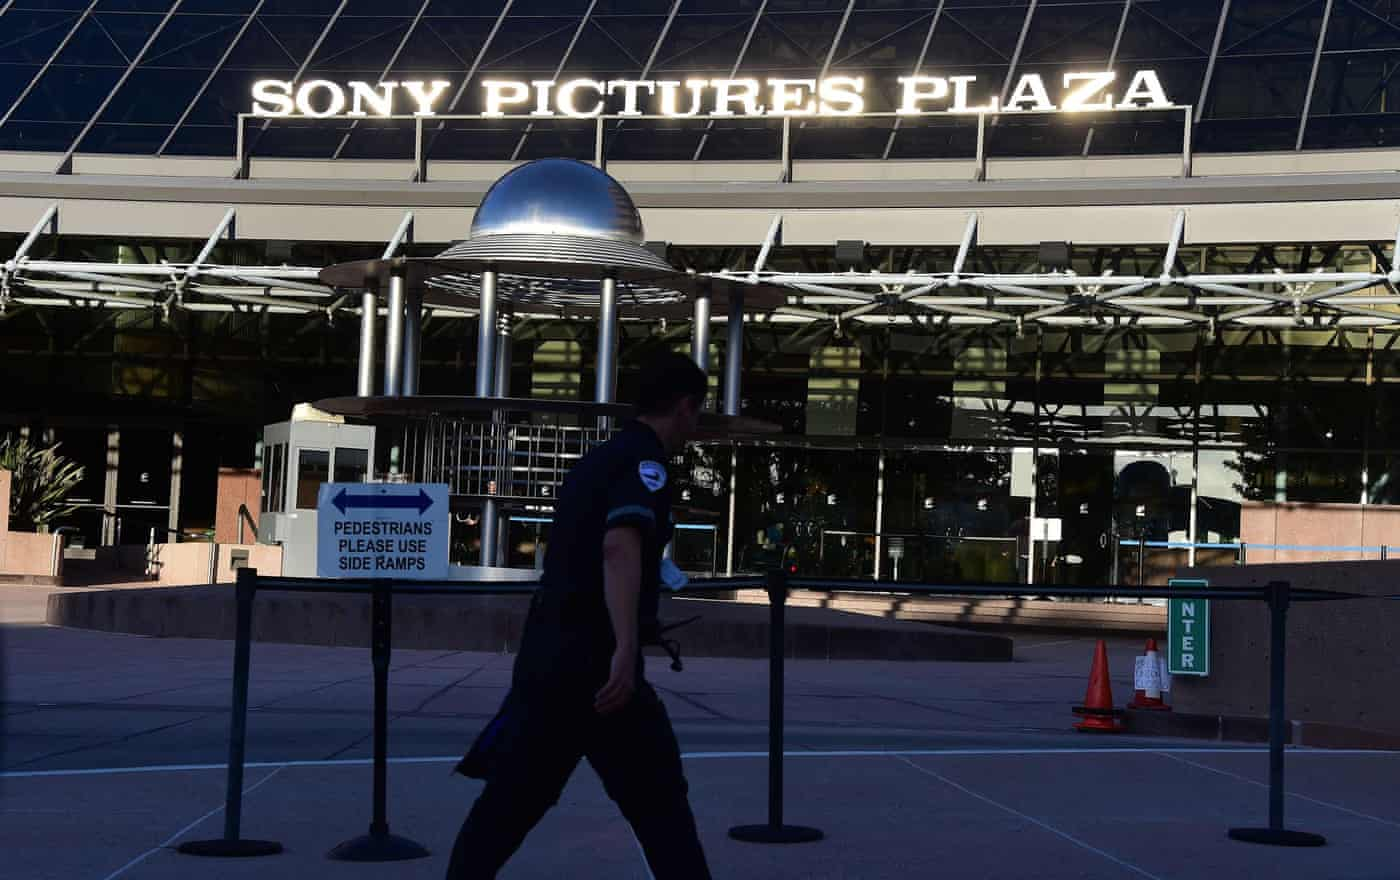 Hackers who targeted Sony invoke 9/11 attacks in warning to moviegoers